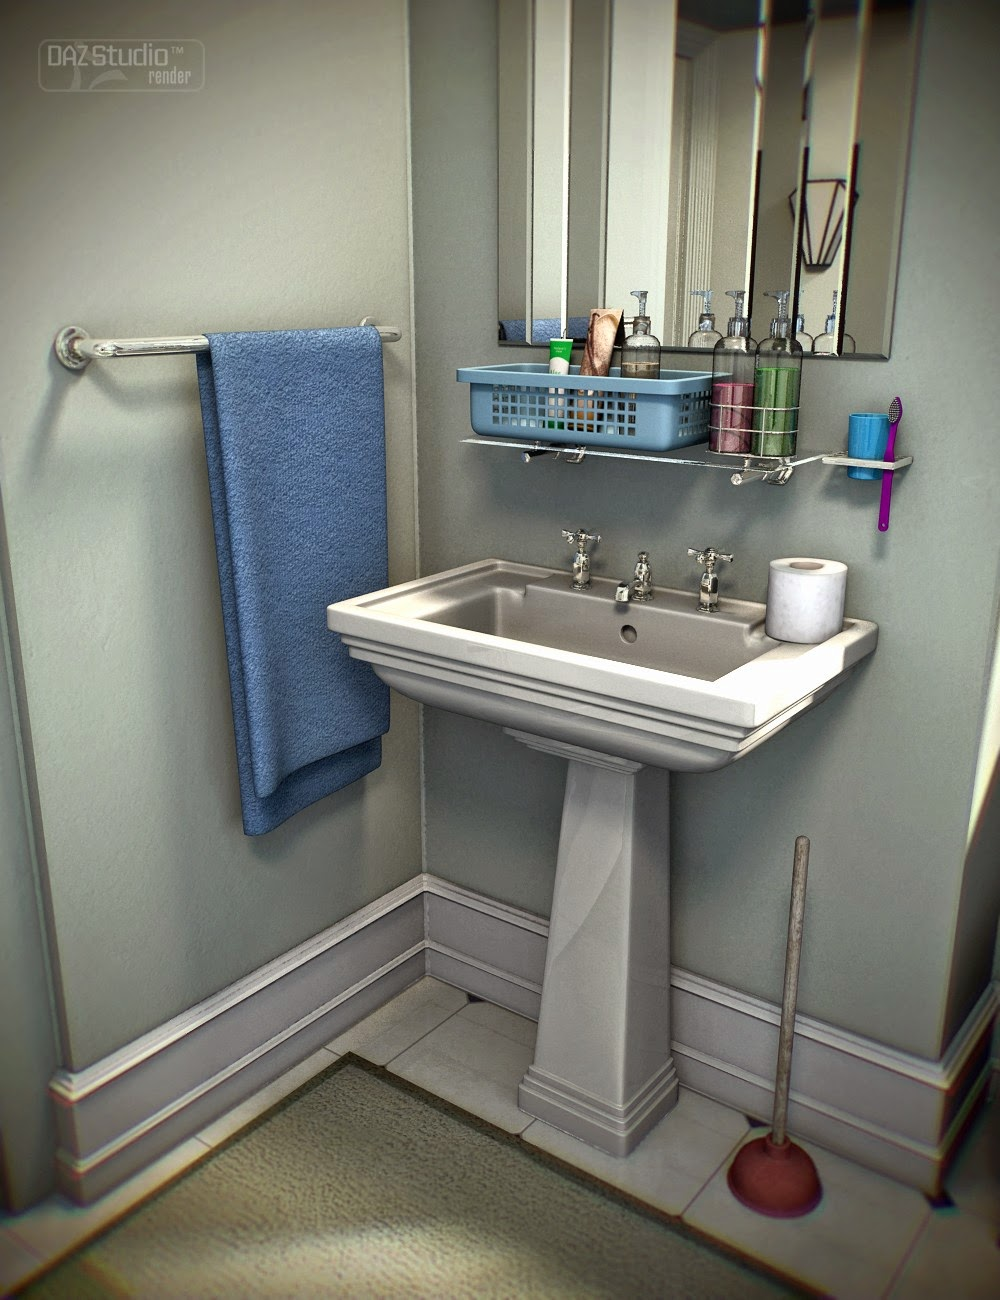 Download daz studio 3 for free daz 3d collective3d for Bathroom things